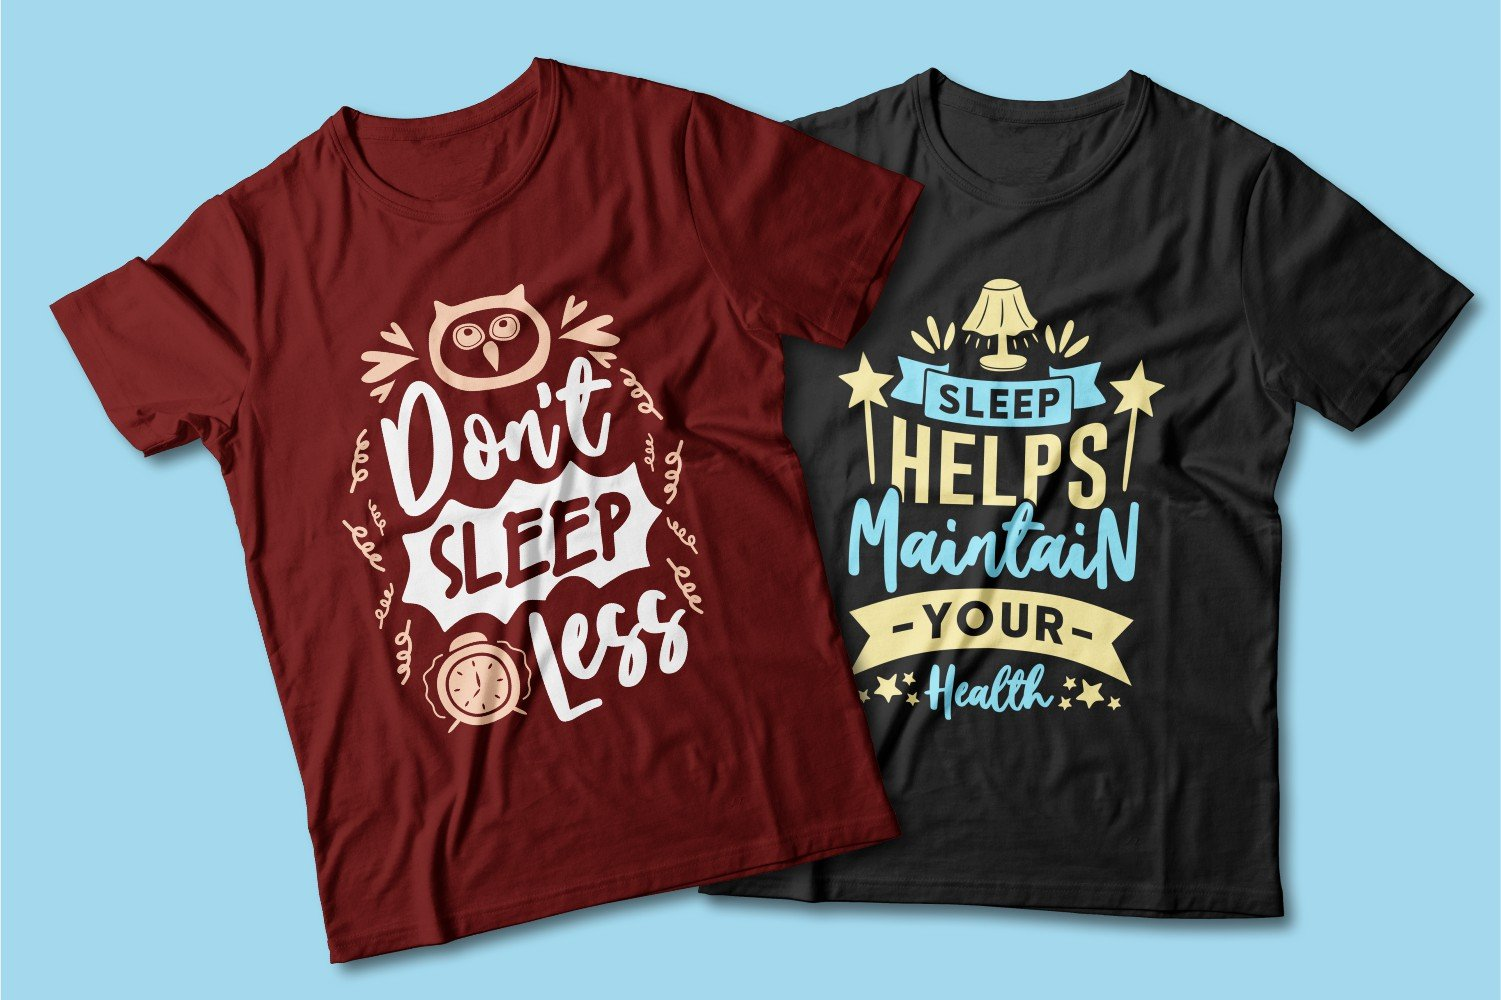 Burgundy and black T-shirts with slogans and watches.